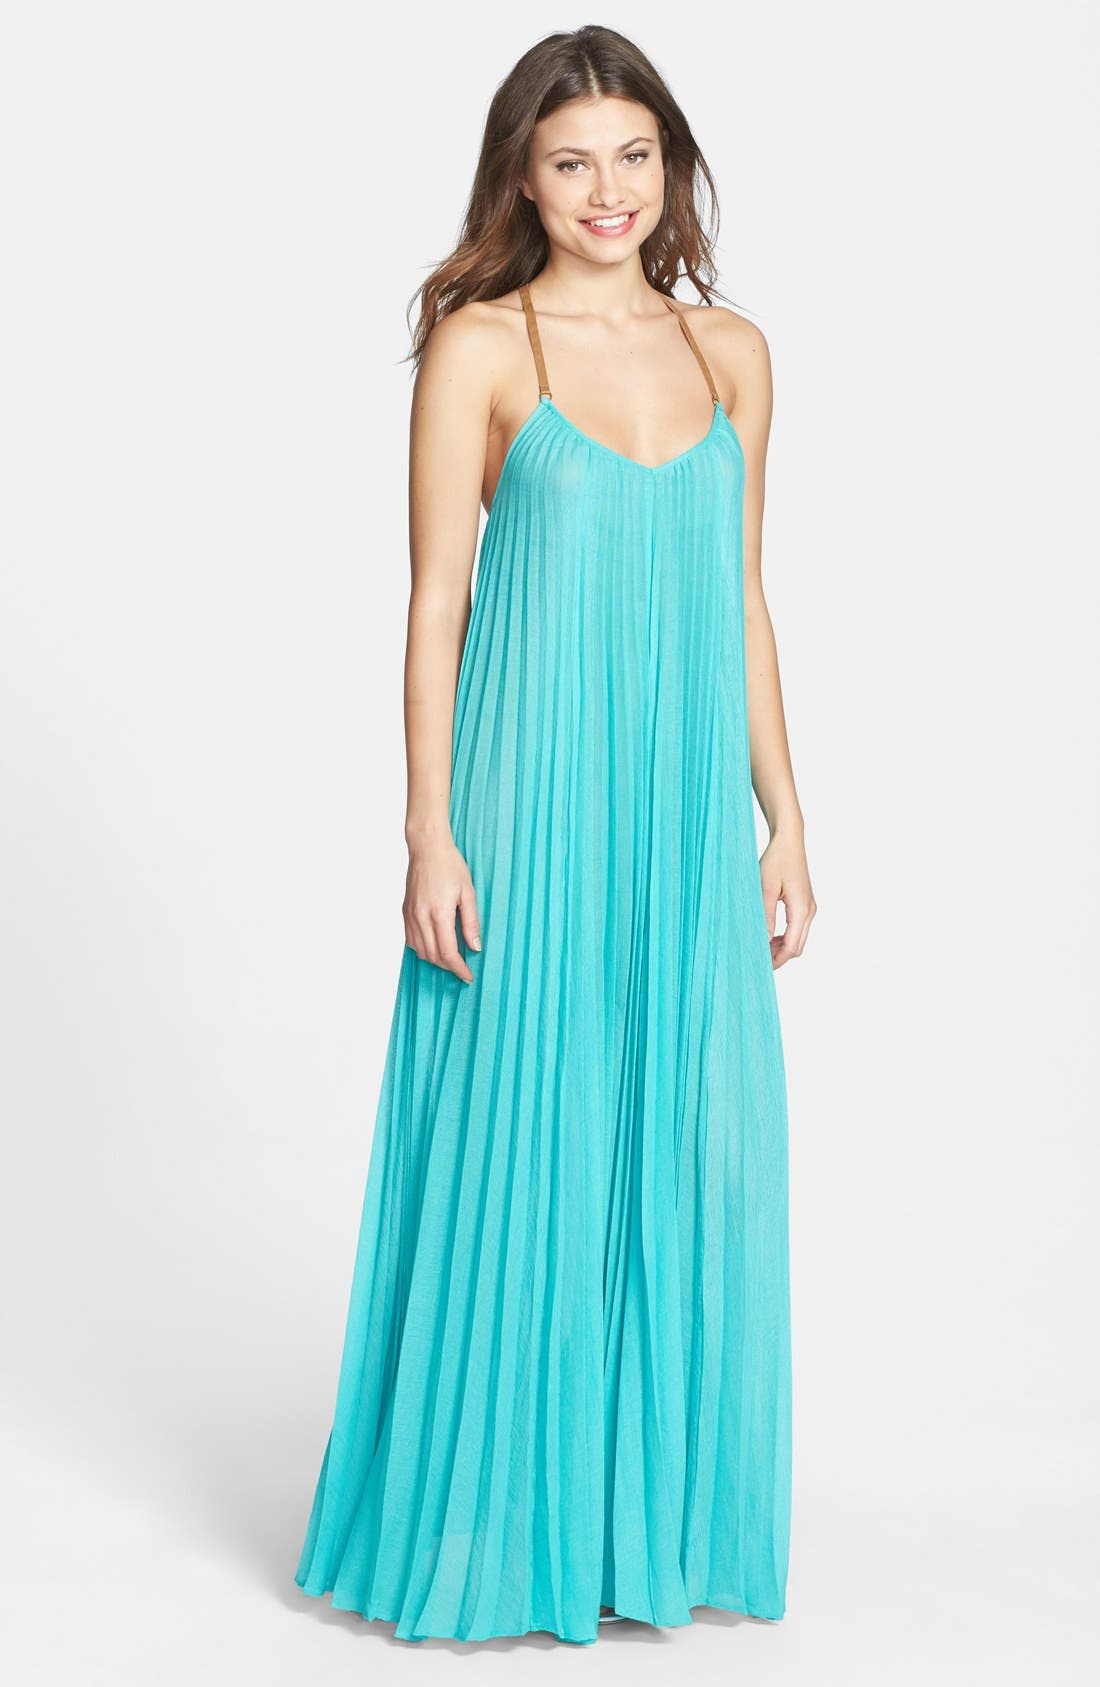 Alternate Image 1 Selected - BCBGMAXAZRIA 'Brynna' T-Strap Back Maxi Dress